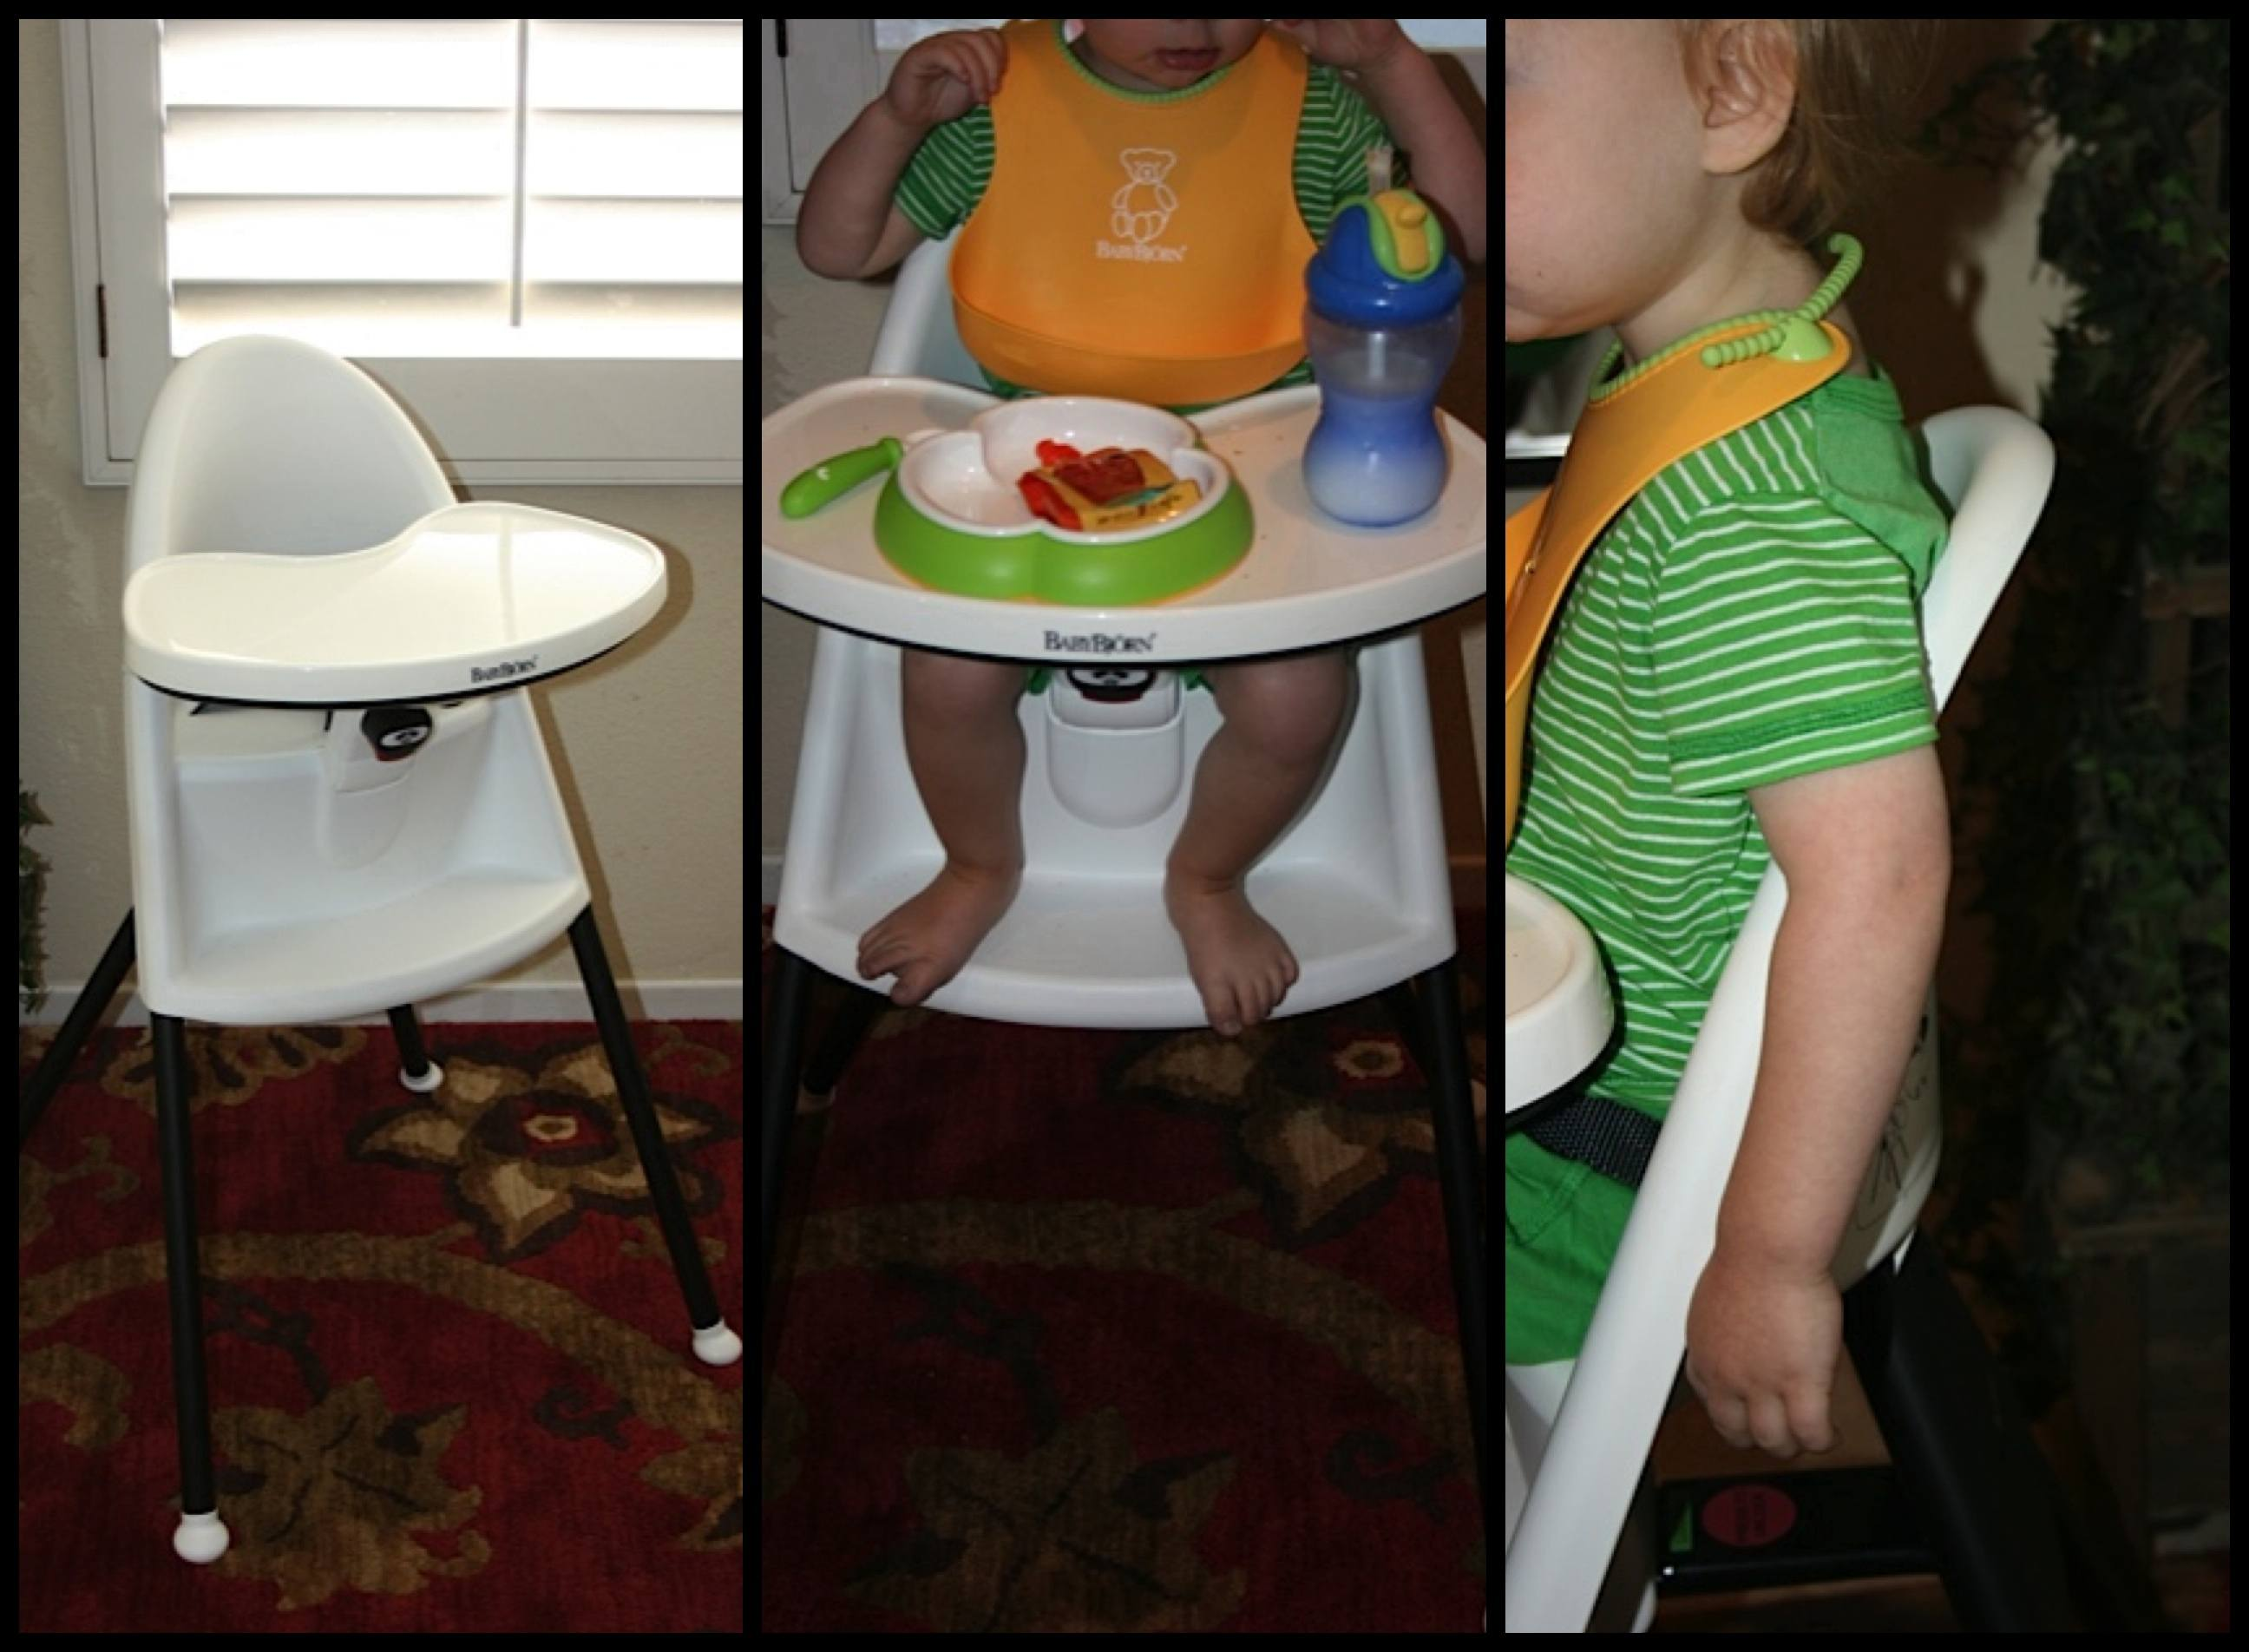 Spotlight Product Review: BabyBjörn High Chair